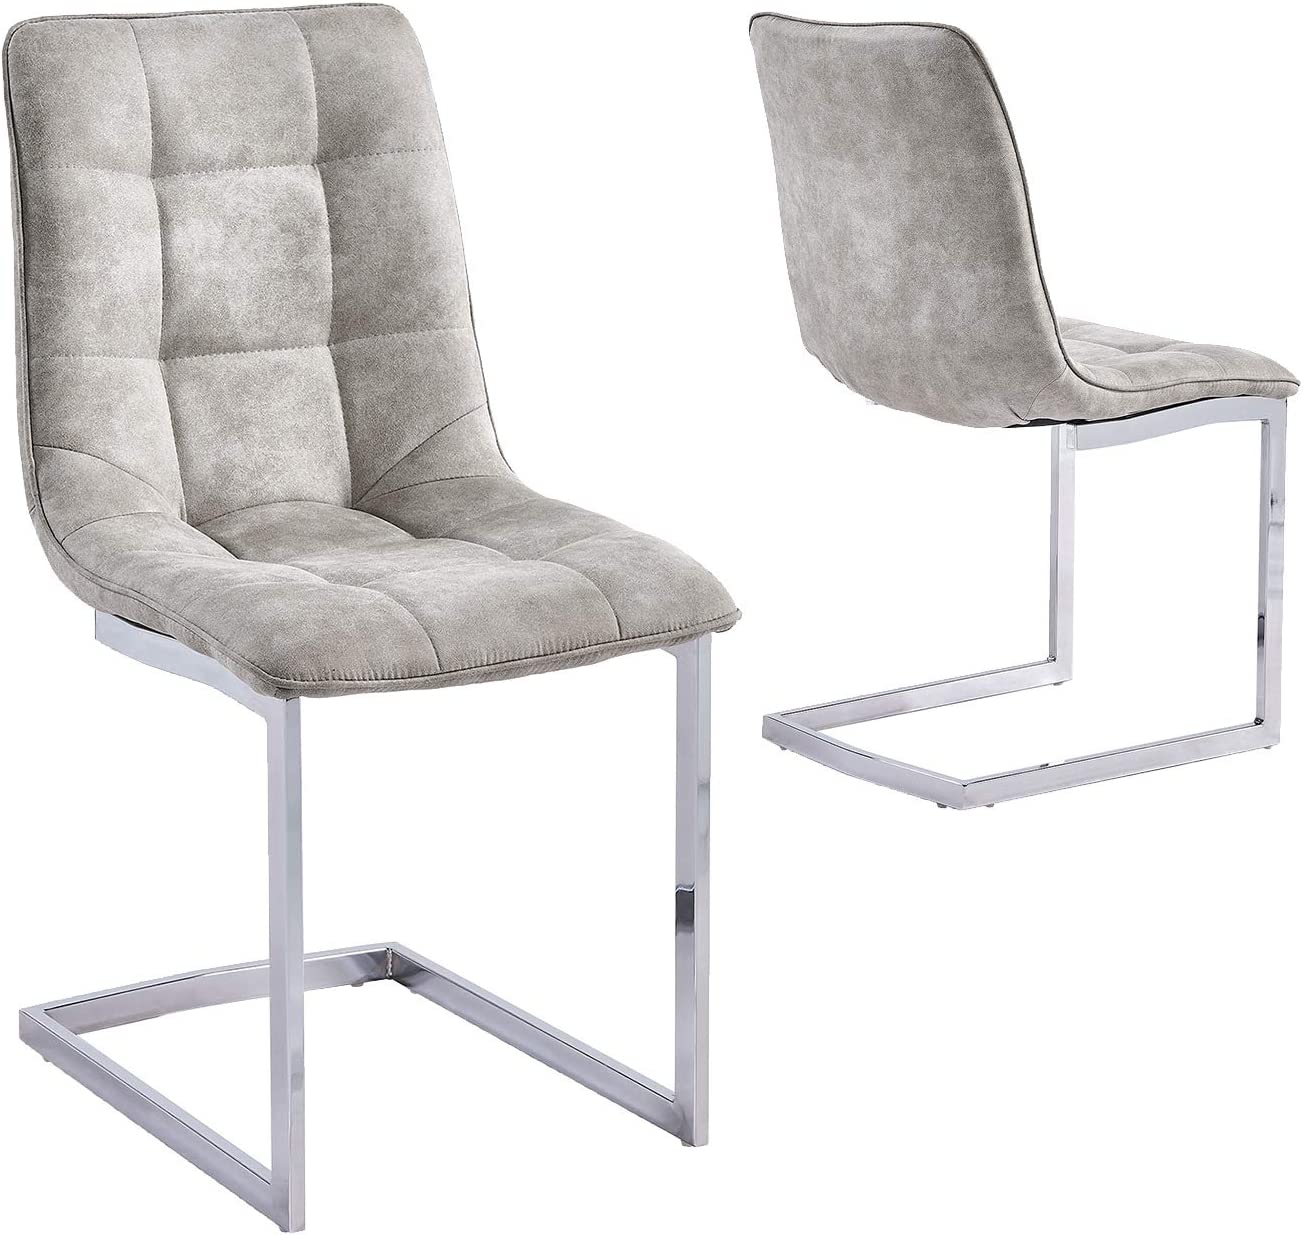 Gizza Set Of 4 Bone Grey Dining Chairs Microfiber Fabric Covers Comfort Seat On Chrome Legs Modern Kitchen Home Furniture Chairs Home Kitchen